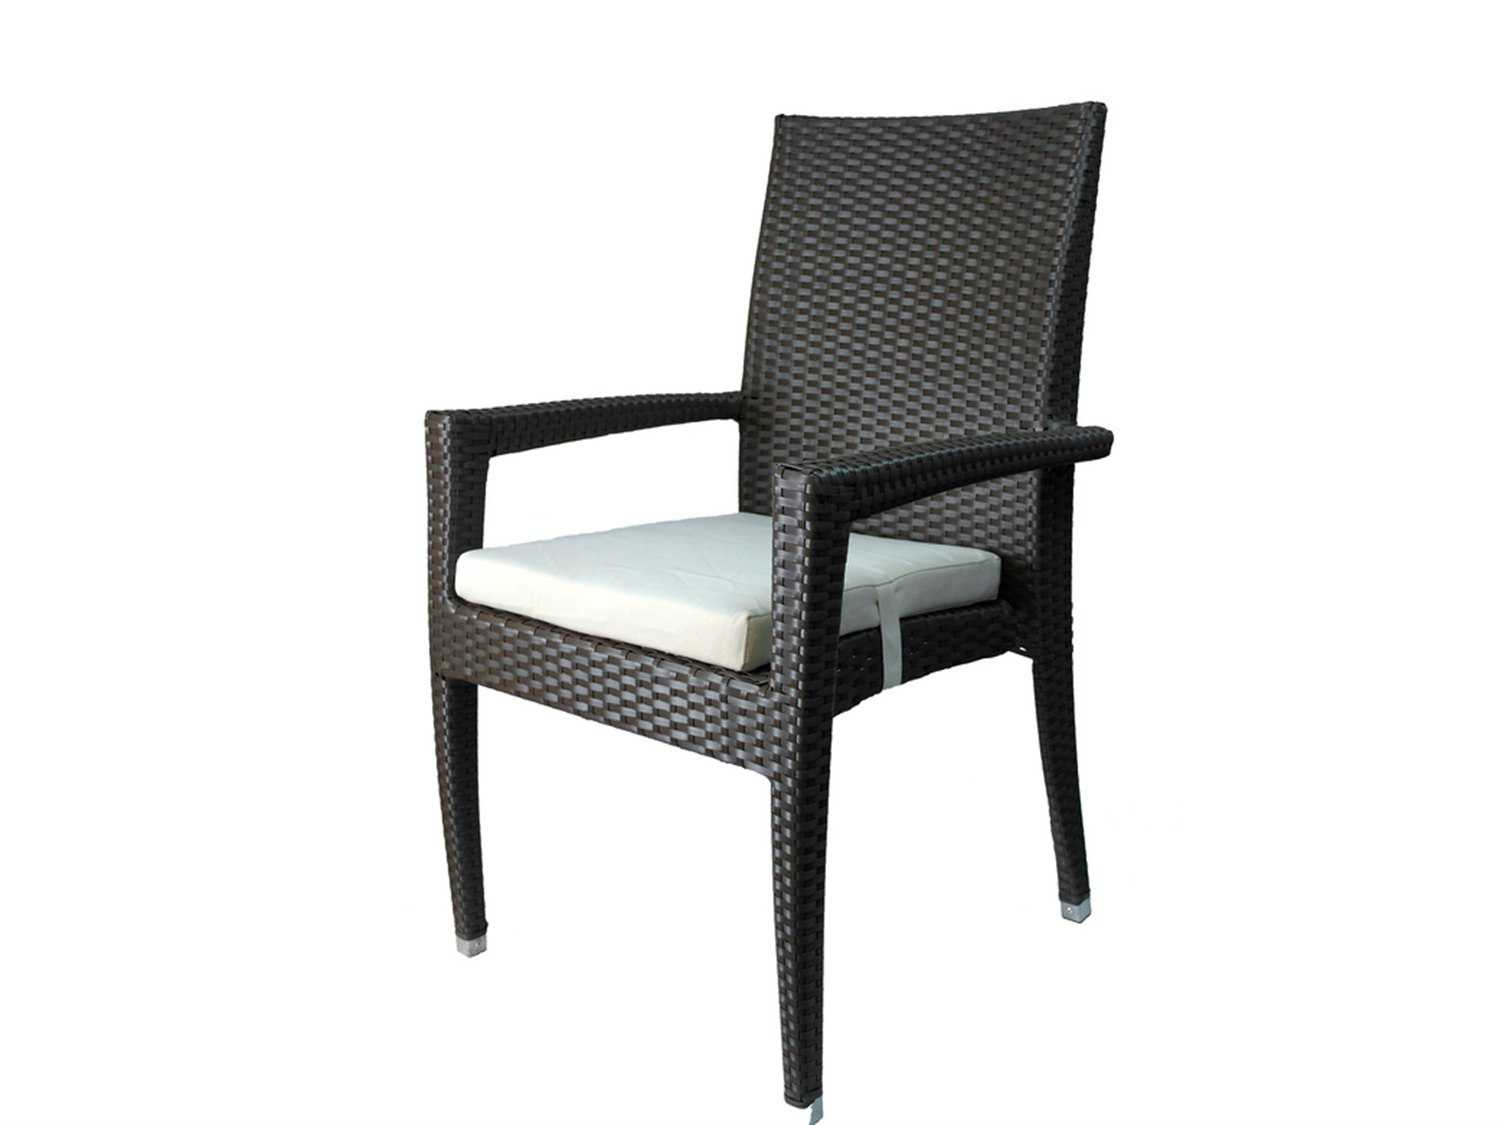 Jaavan Venice Cushion Wicker Dining Arm Chair